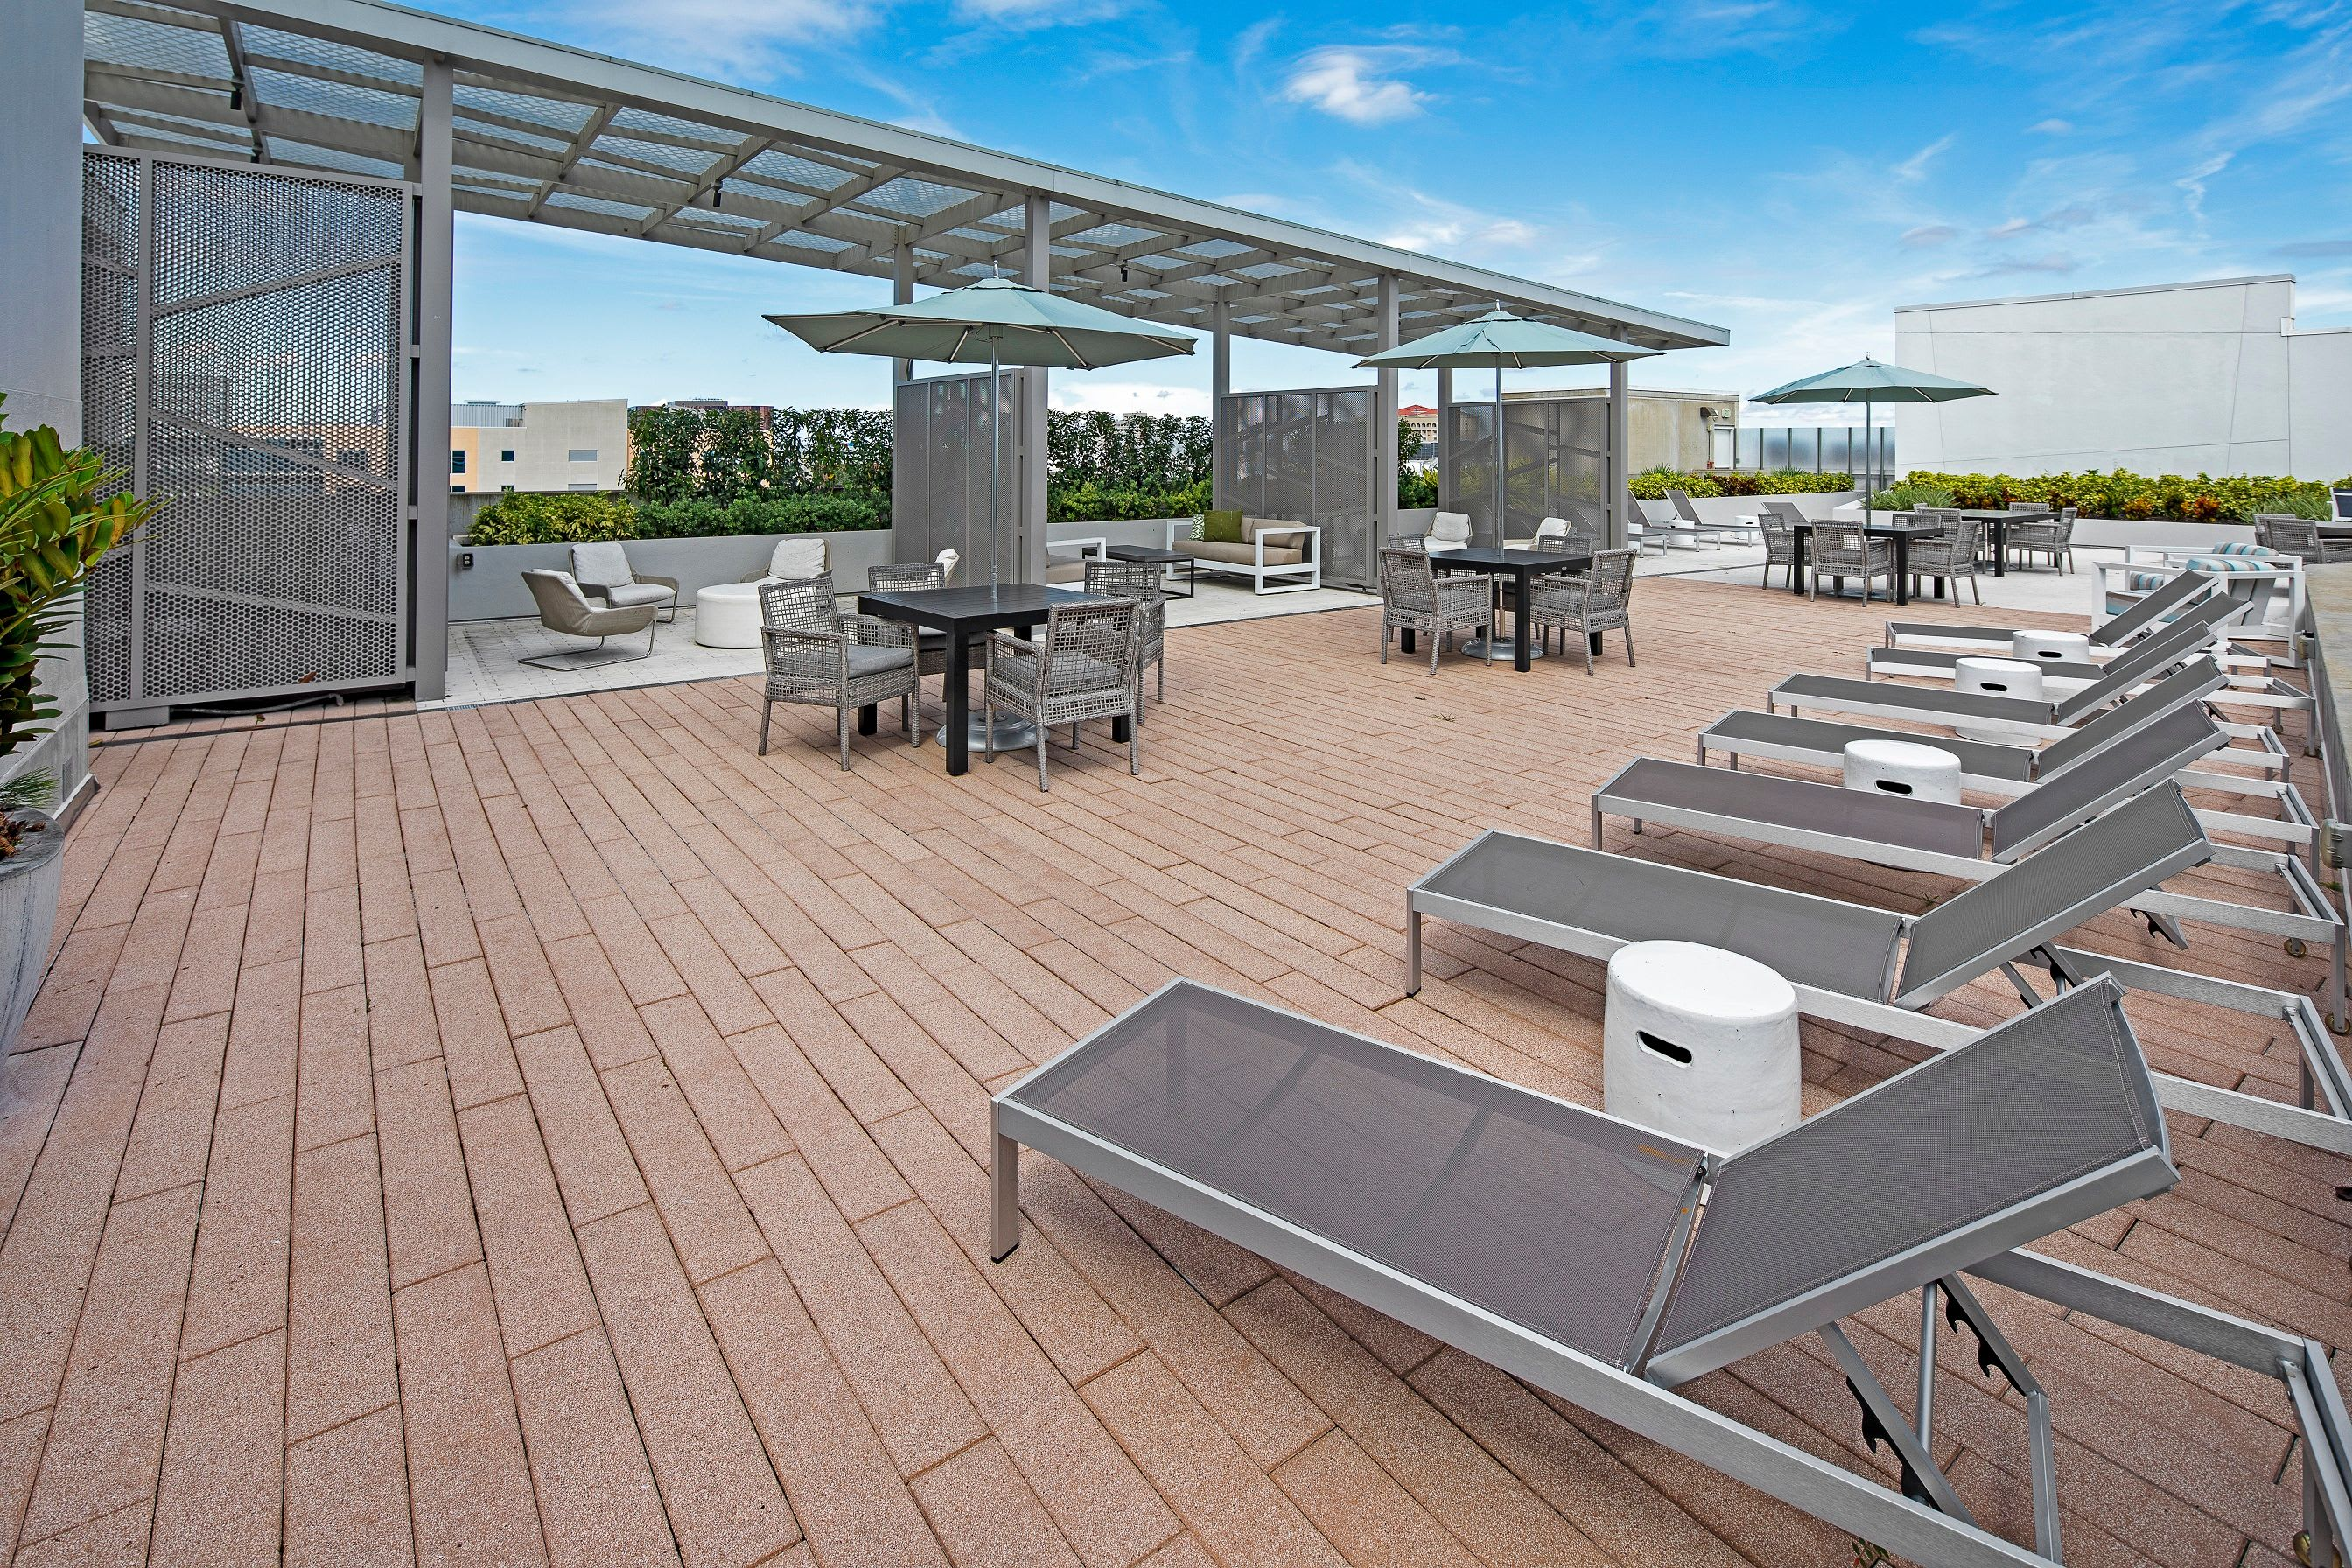 Rooftop lounge area with tons of comfy chairs for everyone to sit in at Central Station on Orange in Orlando, Florida